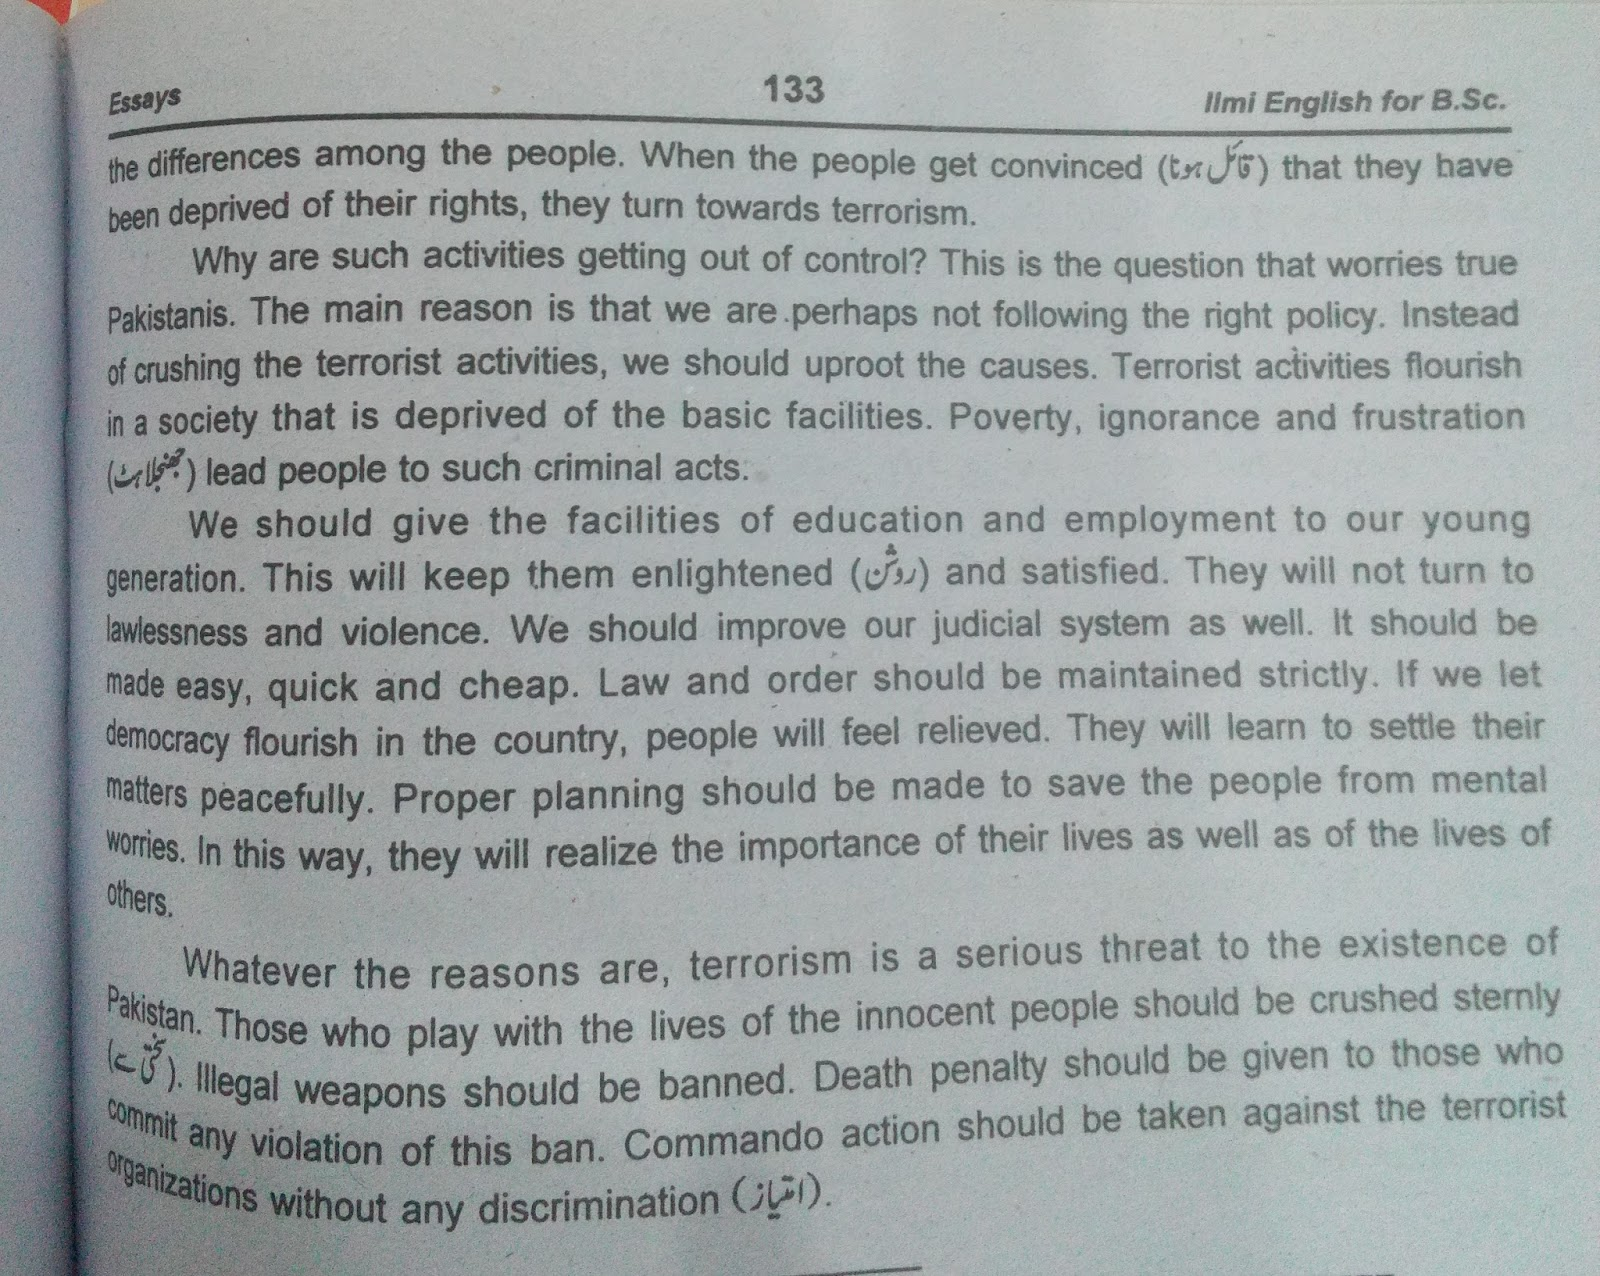 essays on terrorism tcd phd thesis submission best friend essays